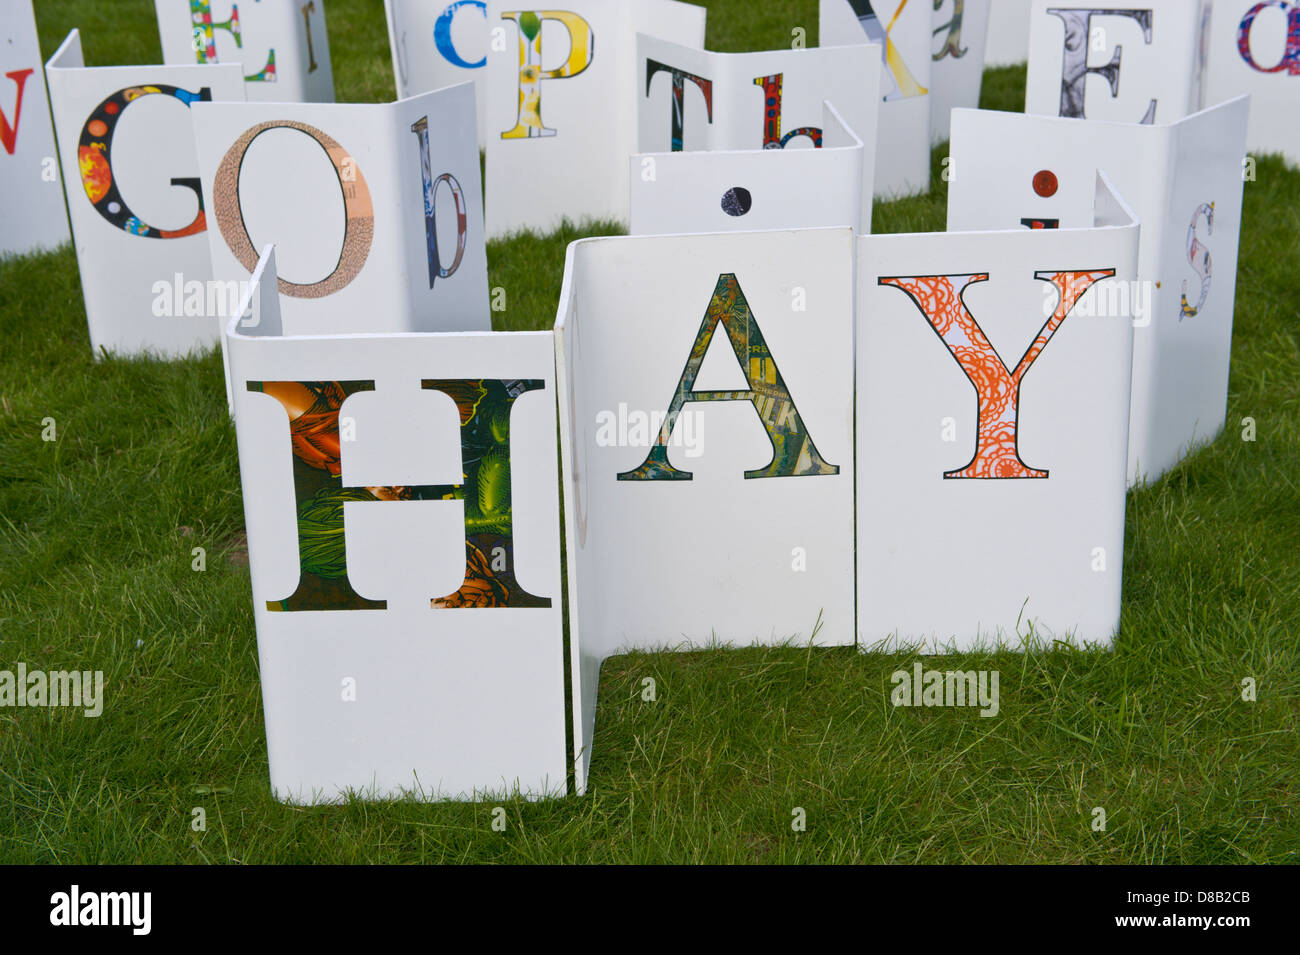 HAY alphabet project by students from Hereford College of Arts at Hay Festival Hay-on-Wye Powys Wales UK - Stock Image